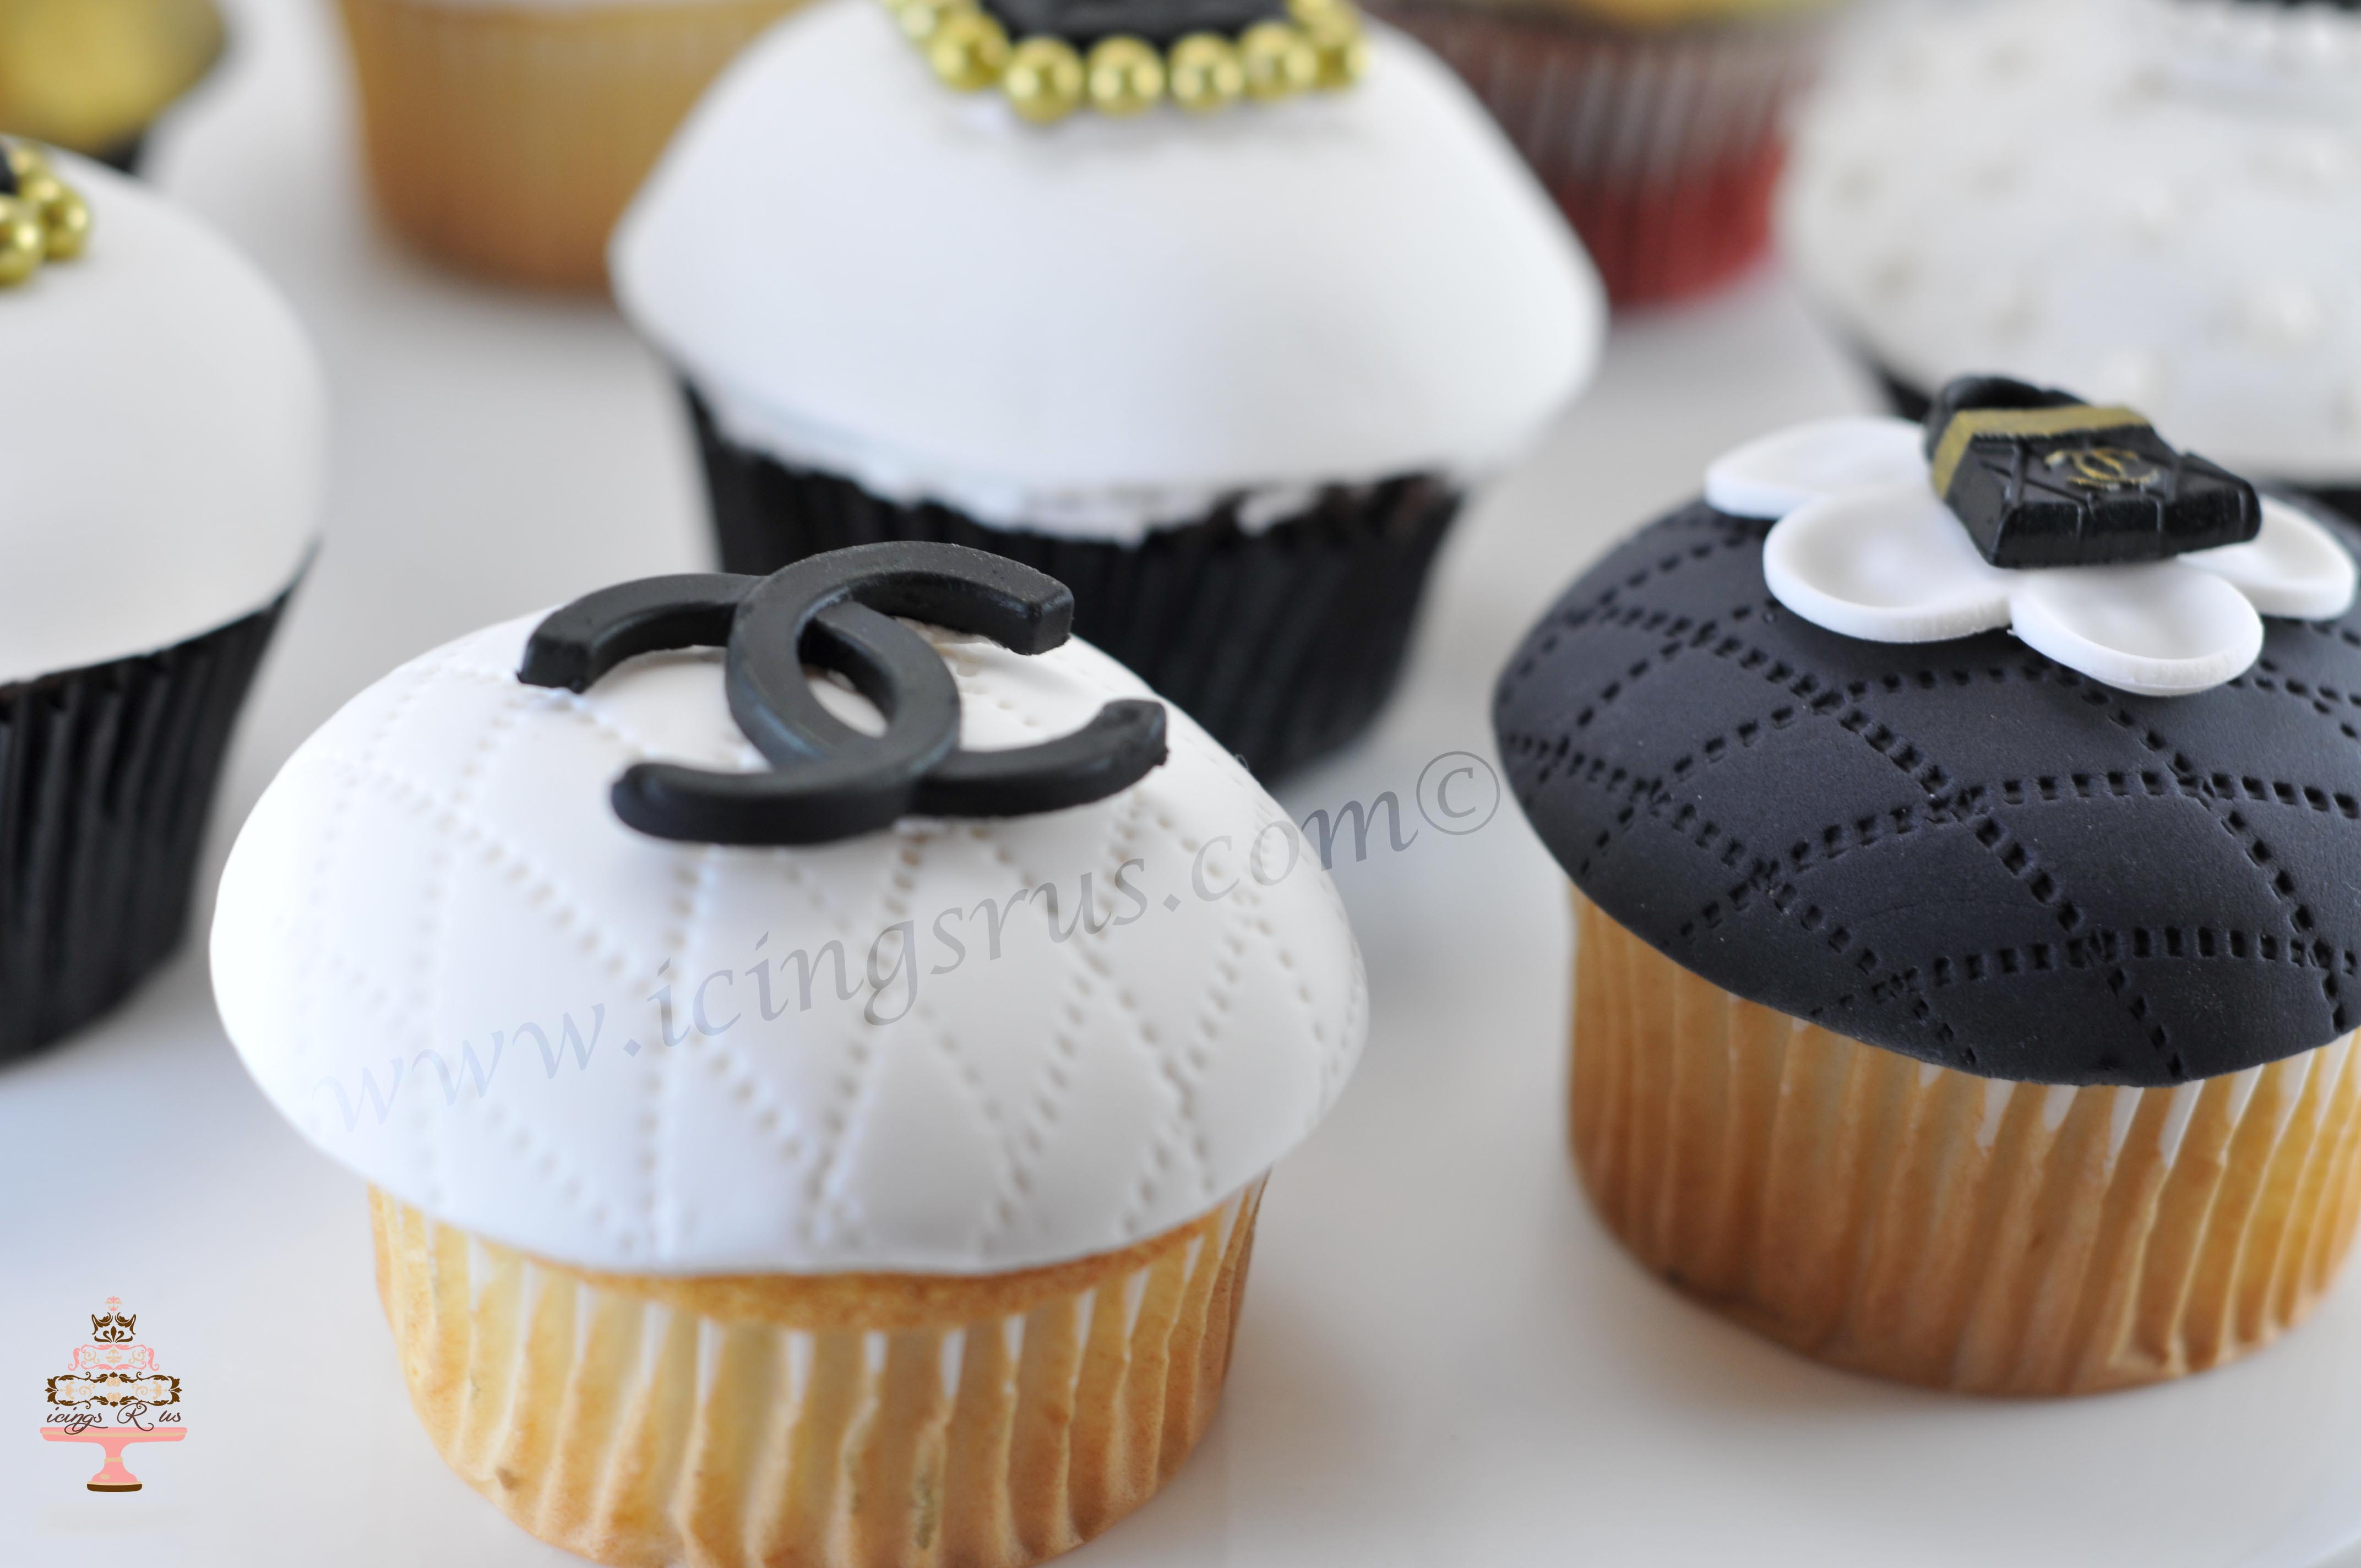 icings R us Chanel Cupcake Close Up